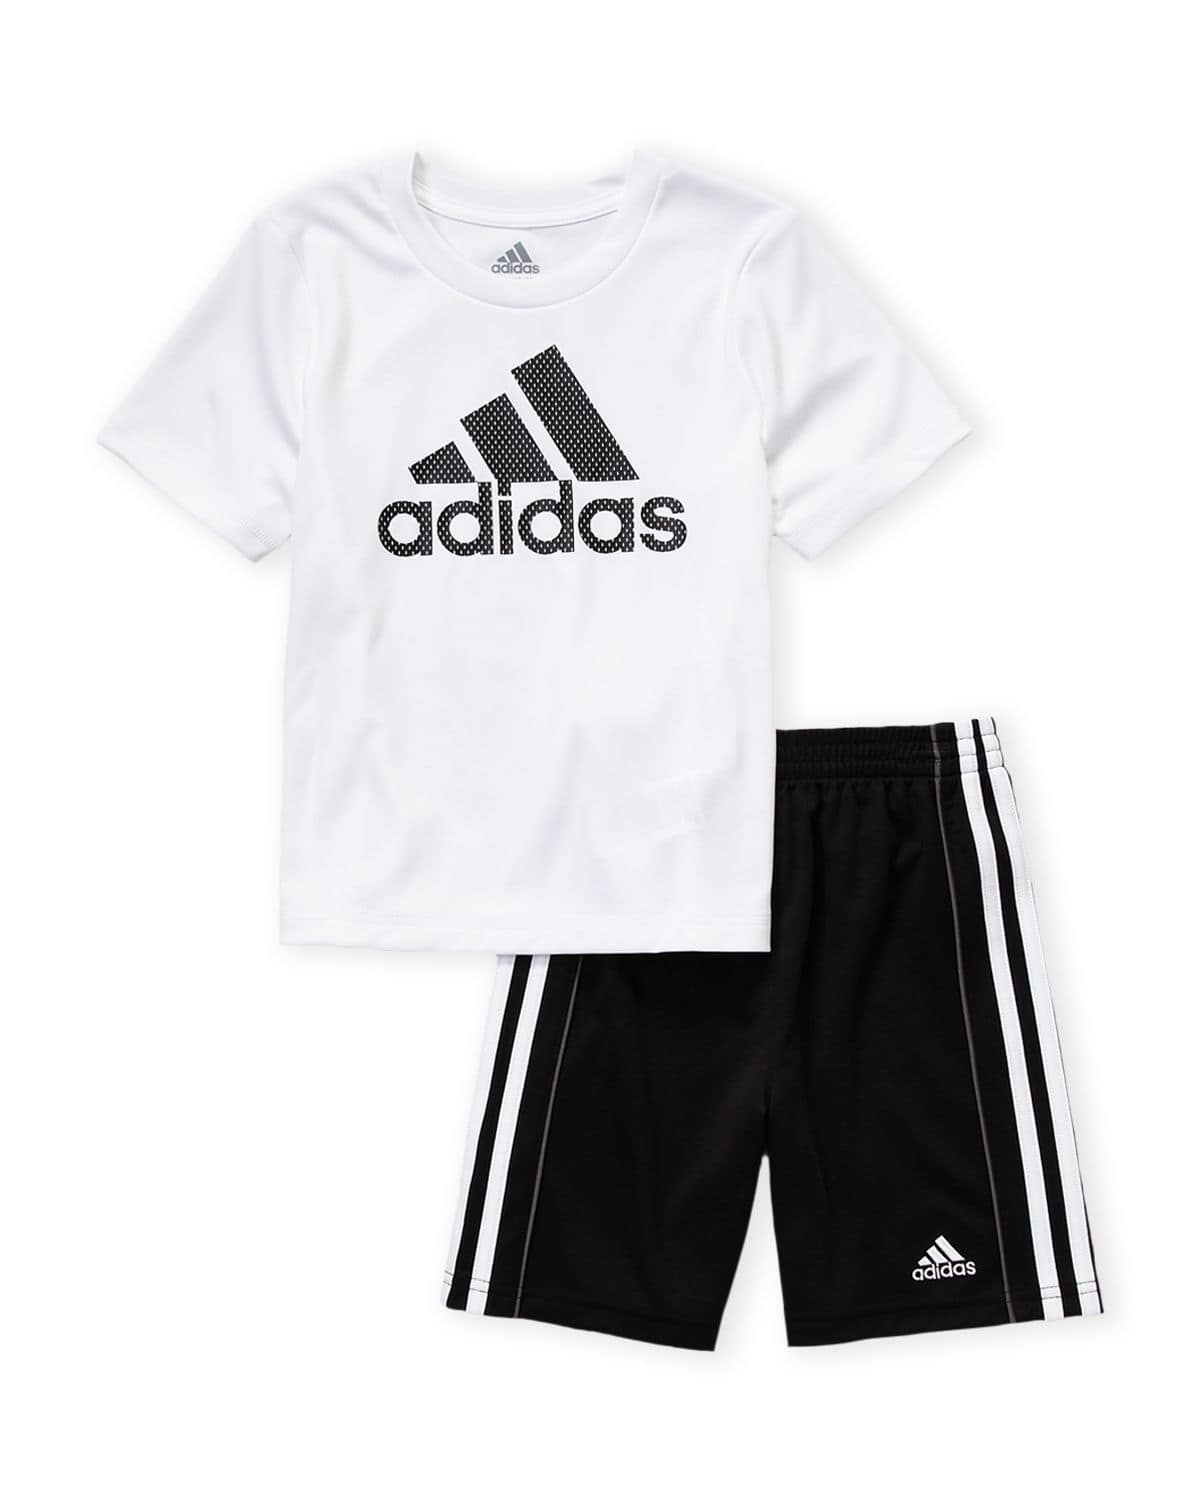 7e4bfad3a8c6c1 Century 21  ADIDAS Children s Two-Piece Set  14.99 + Free Shipping on  10+